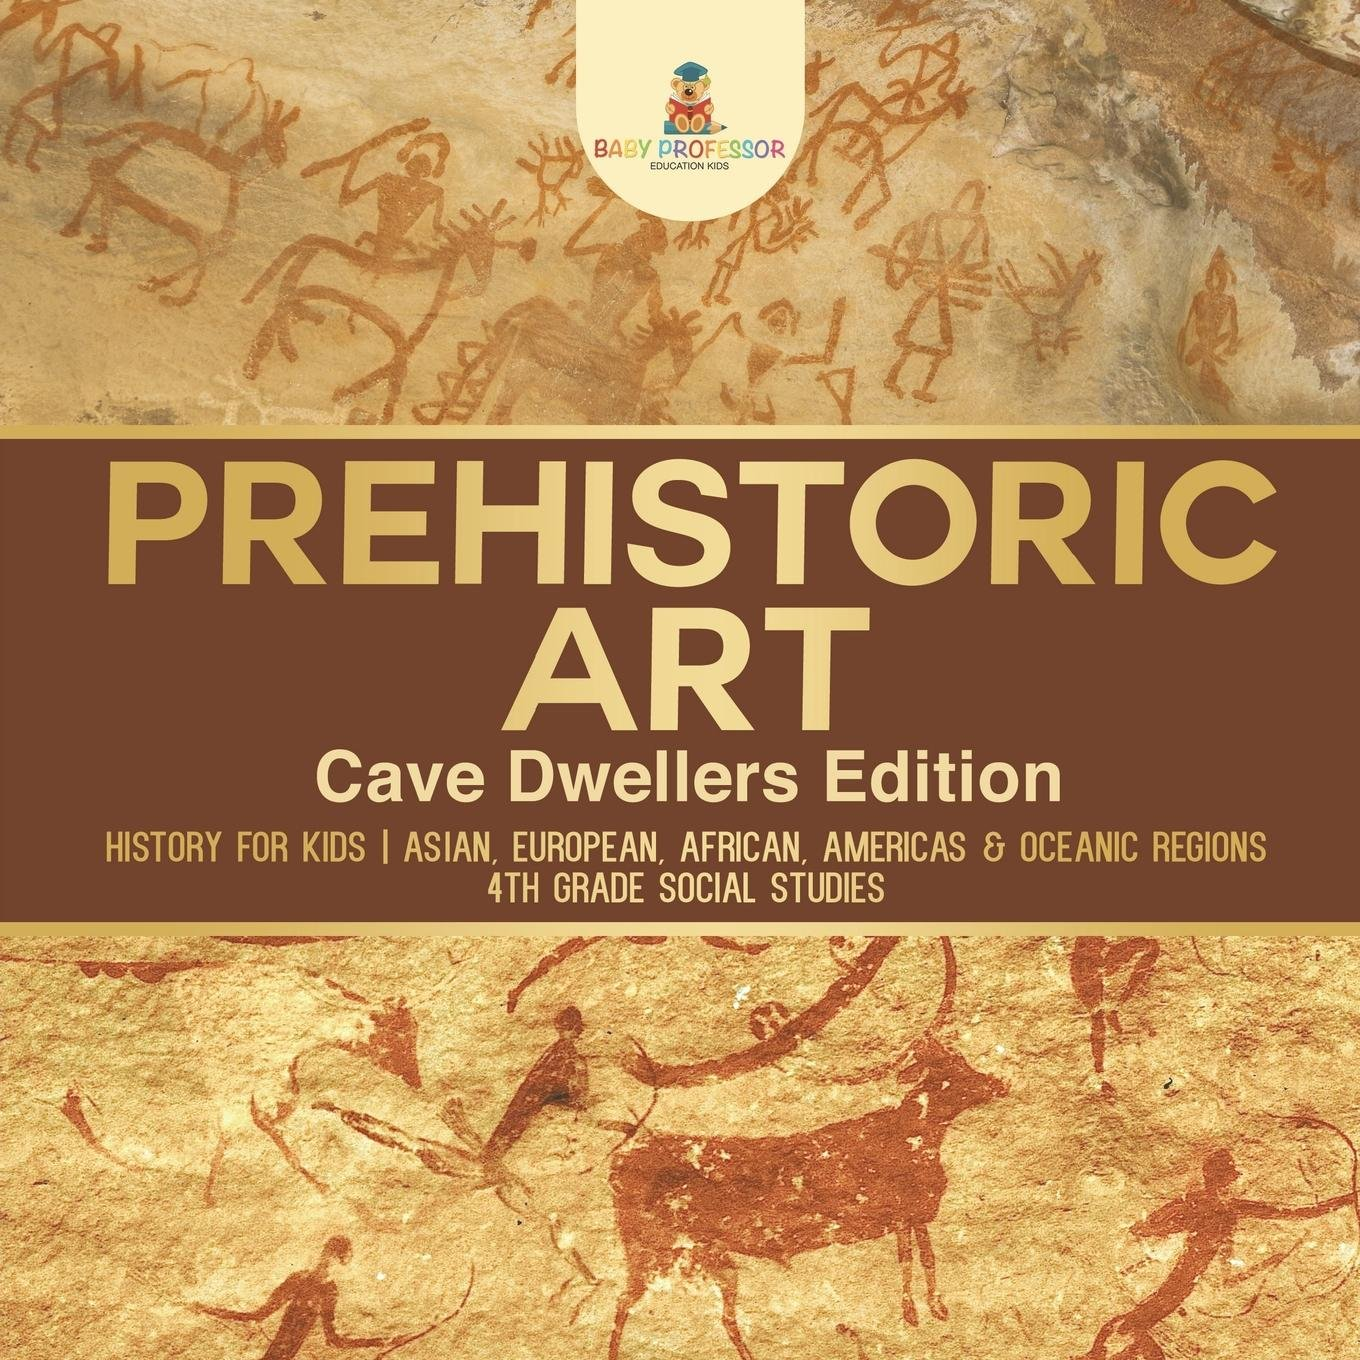 Prehistoric Art - Cave Dwellers Edition - History for Kids | Asian, European, African, Americas & Oceanic Regions | 4th Grade Children's Prehistoric Books